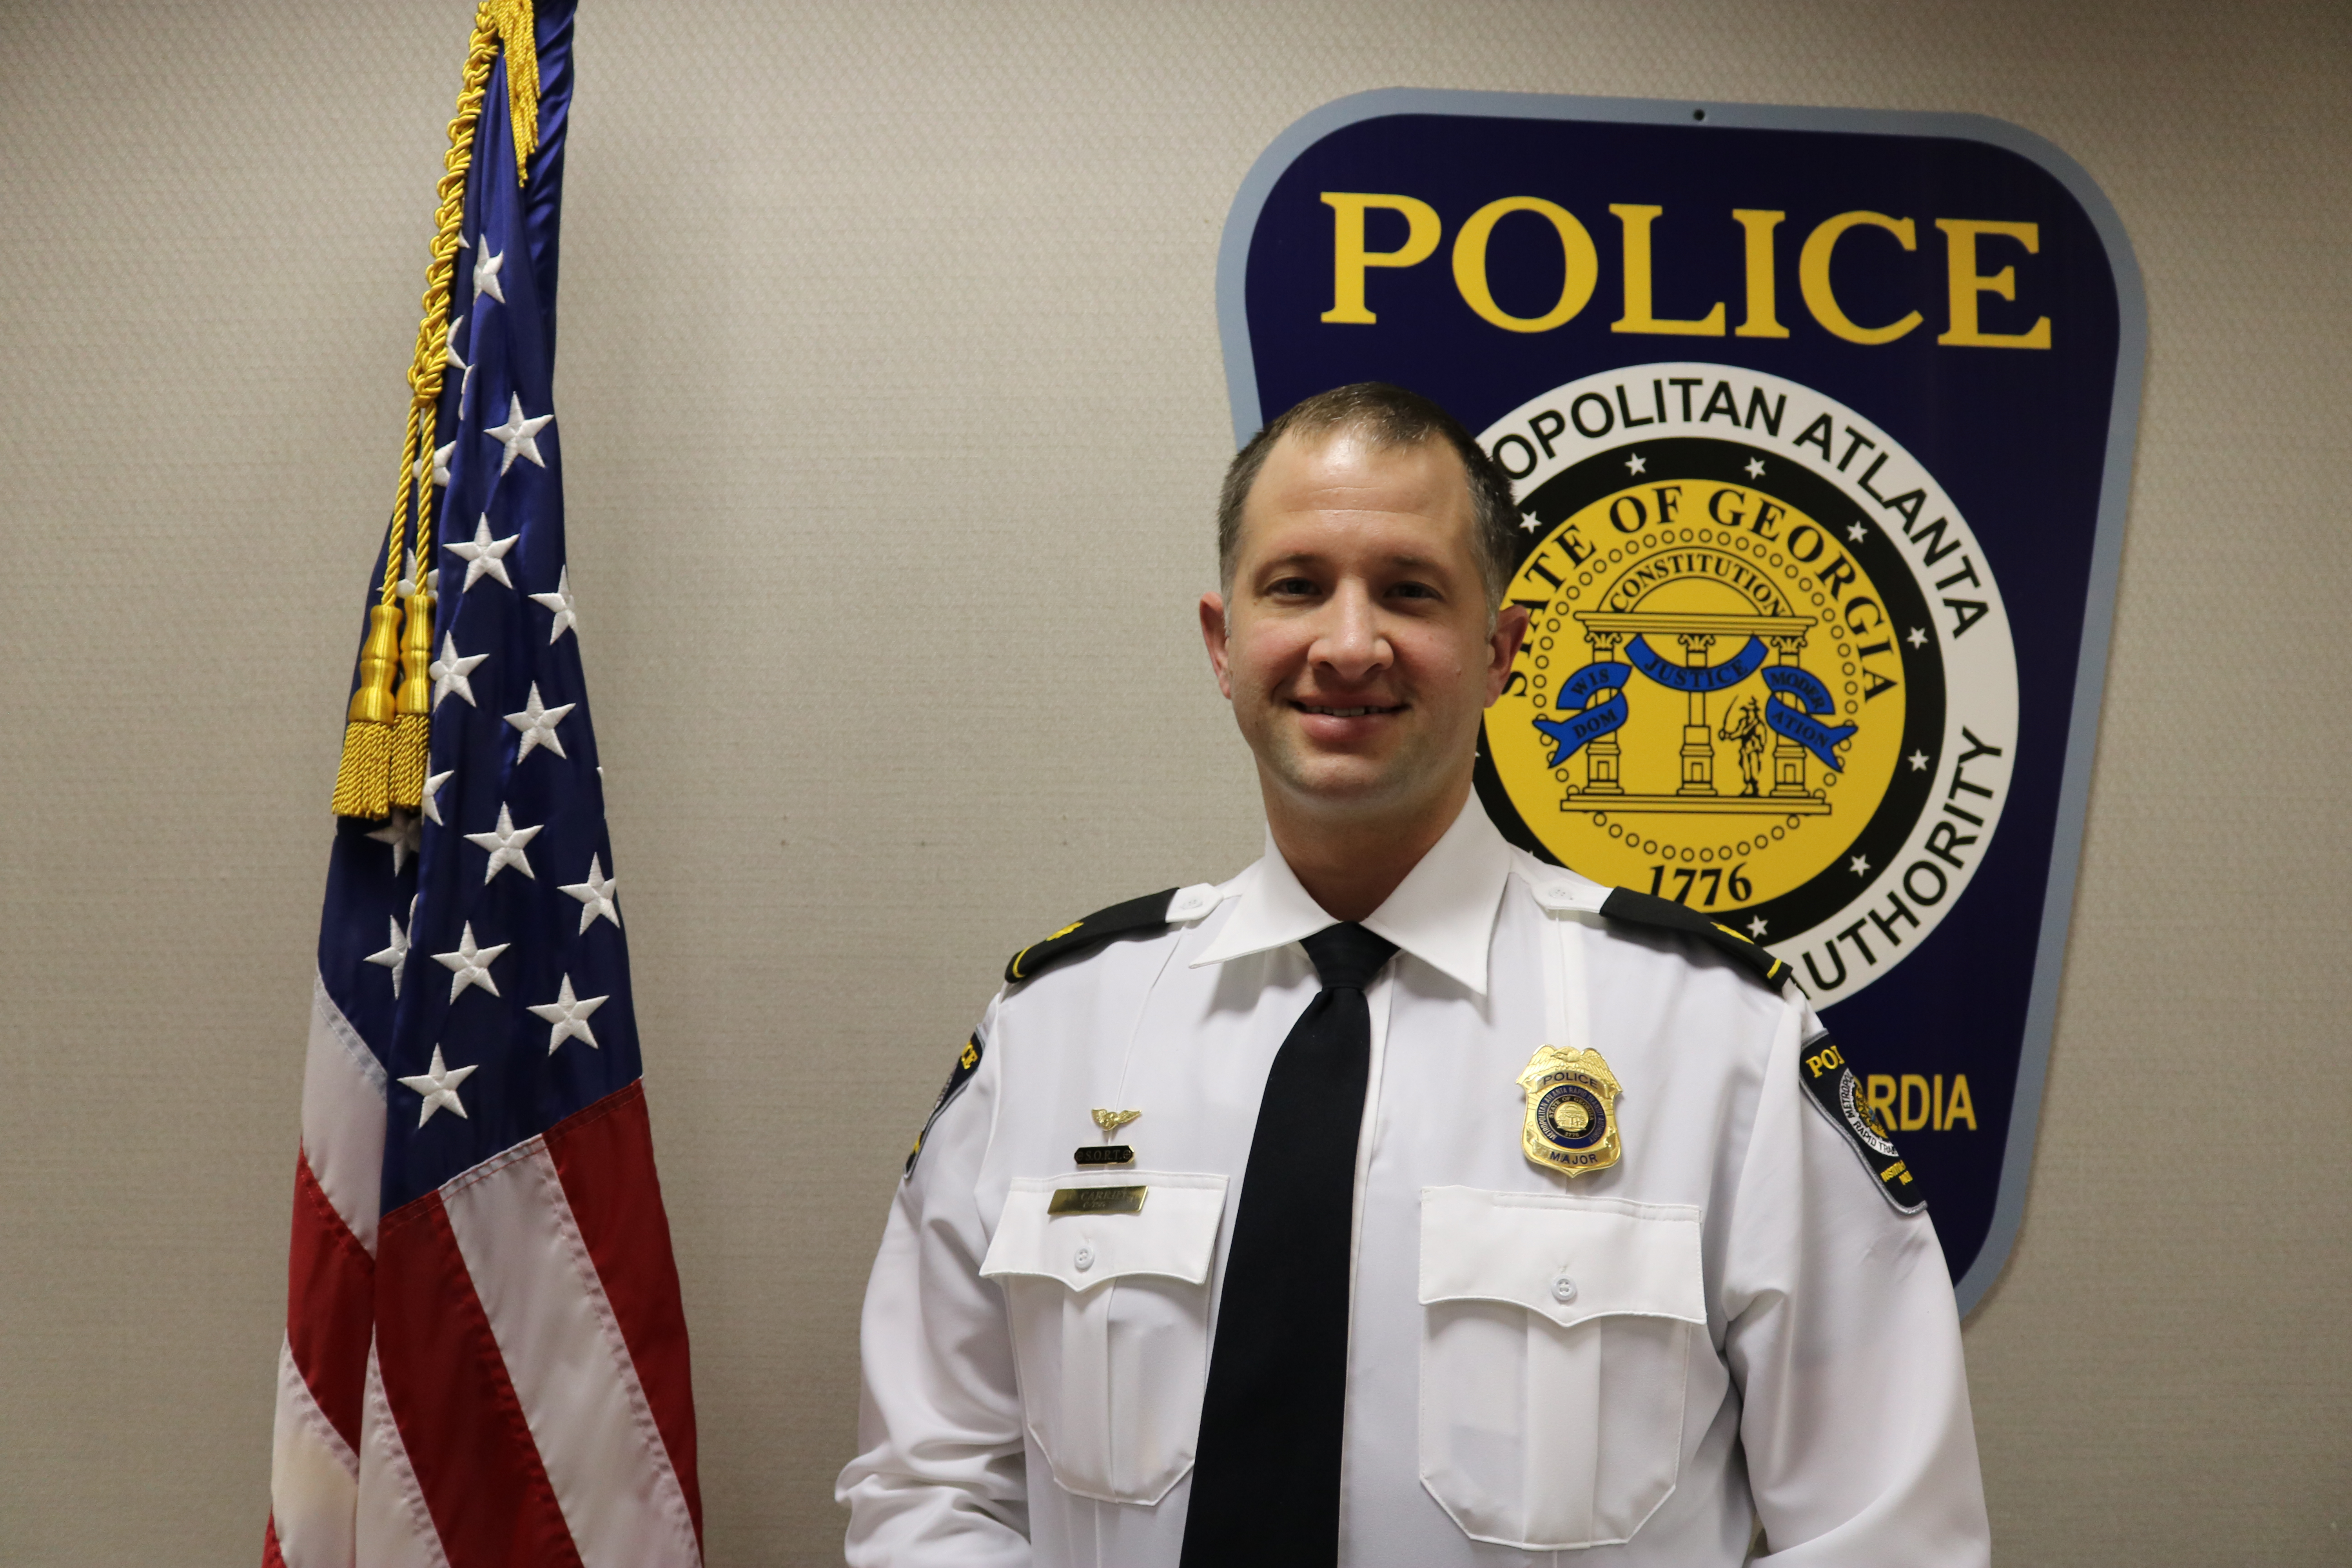 MPD Major Matthew Carrier